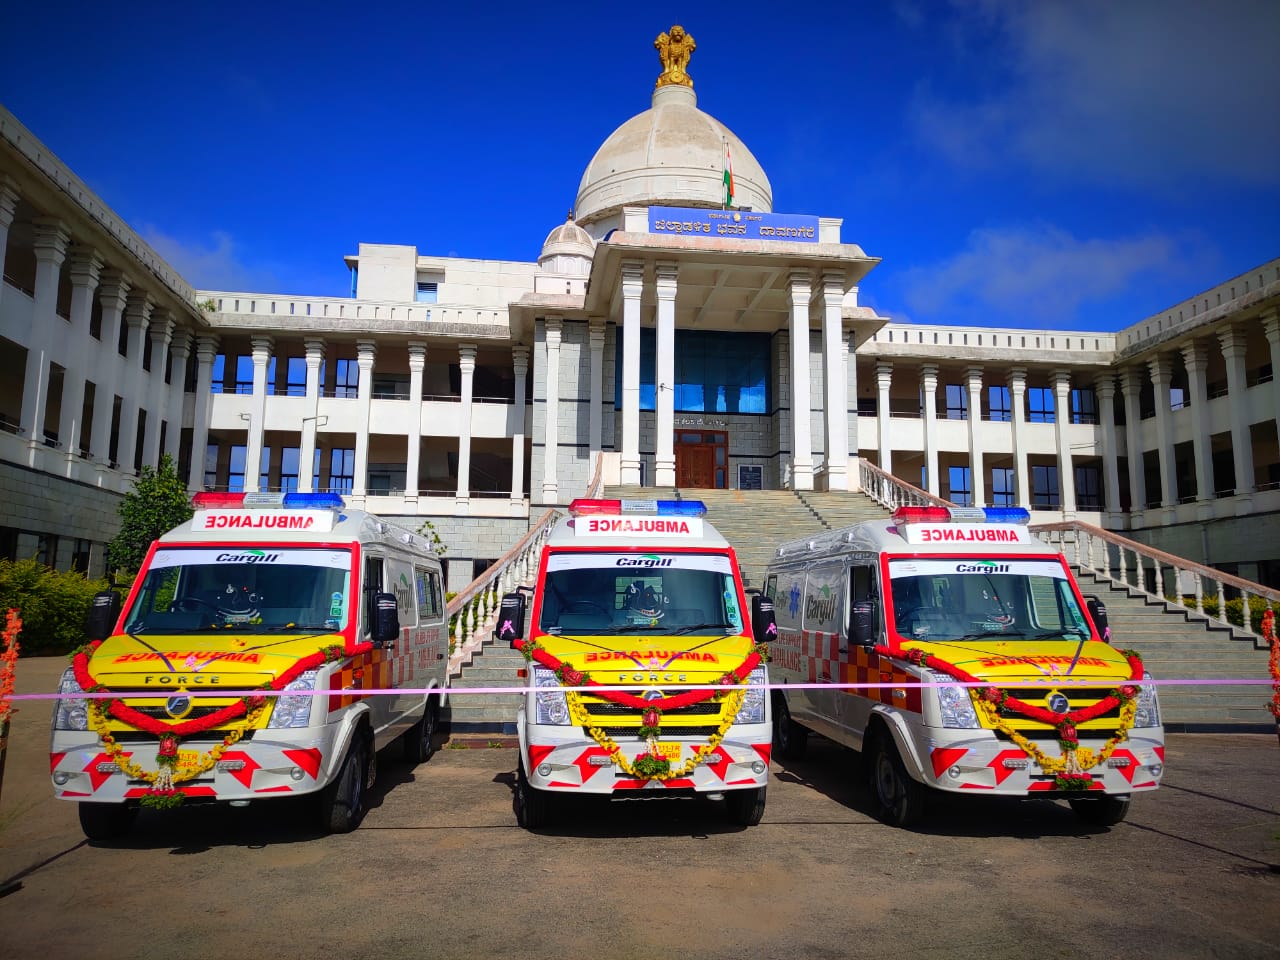 Cargill Donates 3 Advance Life Support (ALS) Ambulances to district health authorities